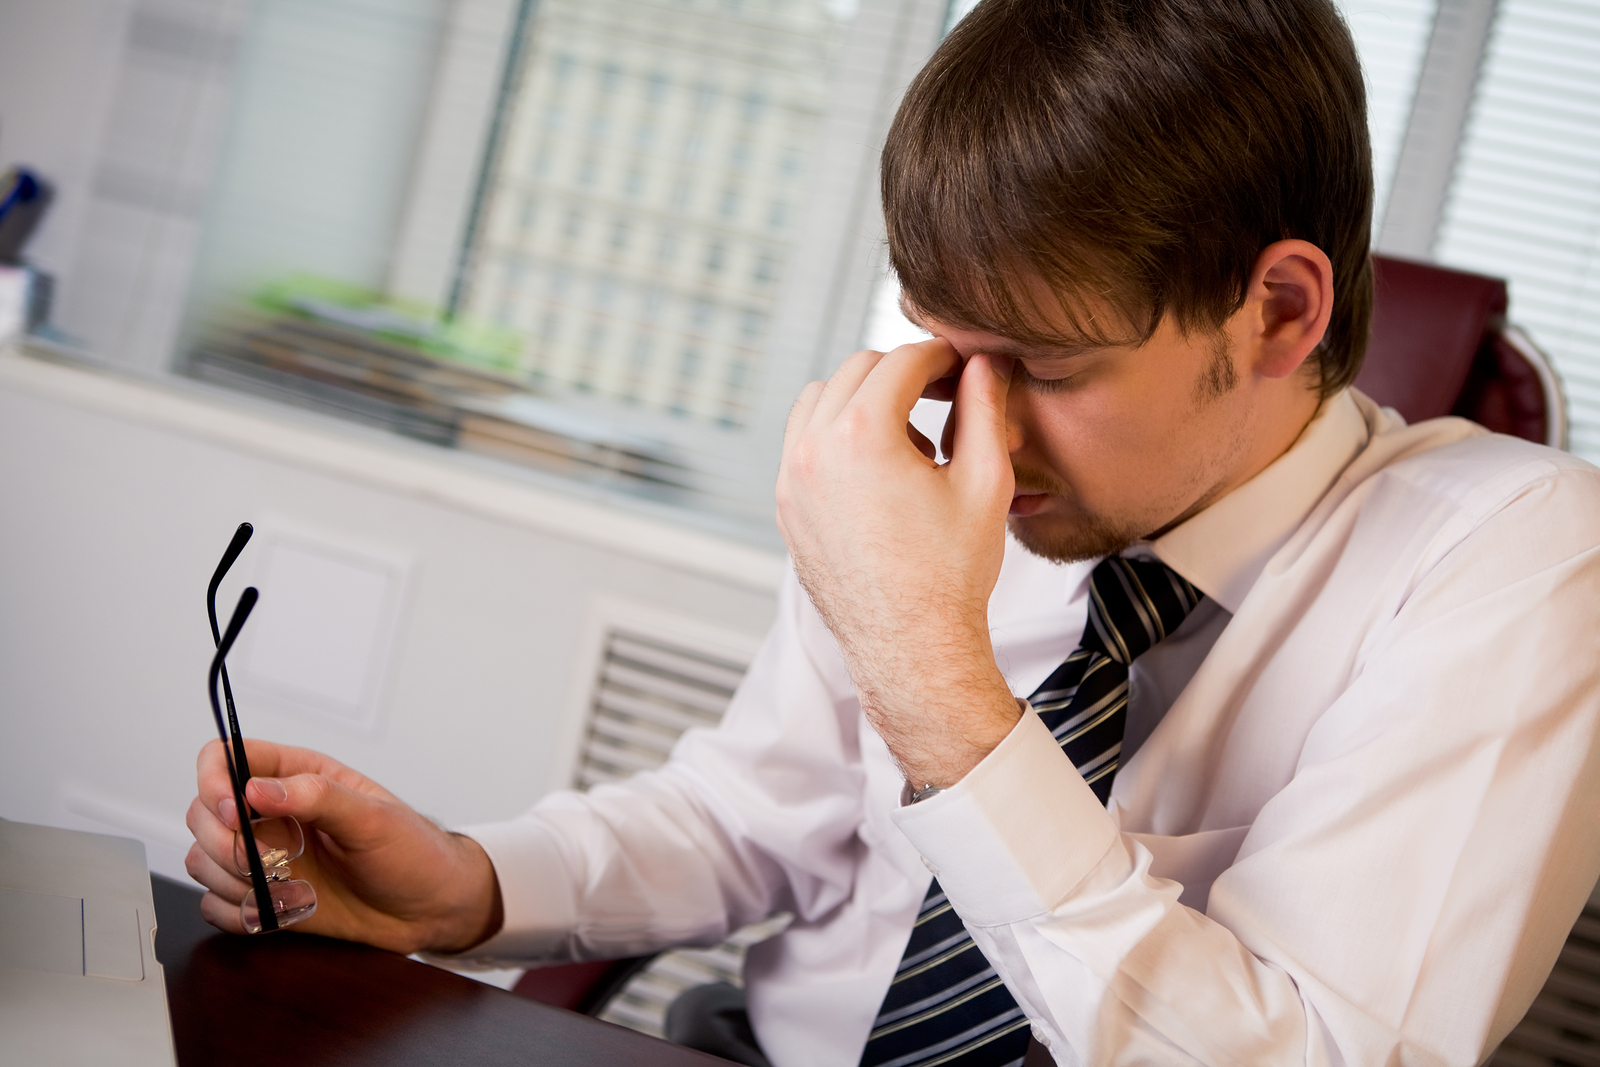 How Should Employers Address Personal Issues in the Workplace?